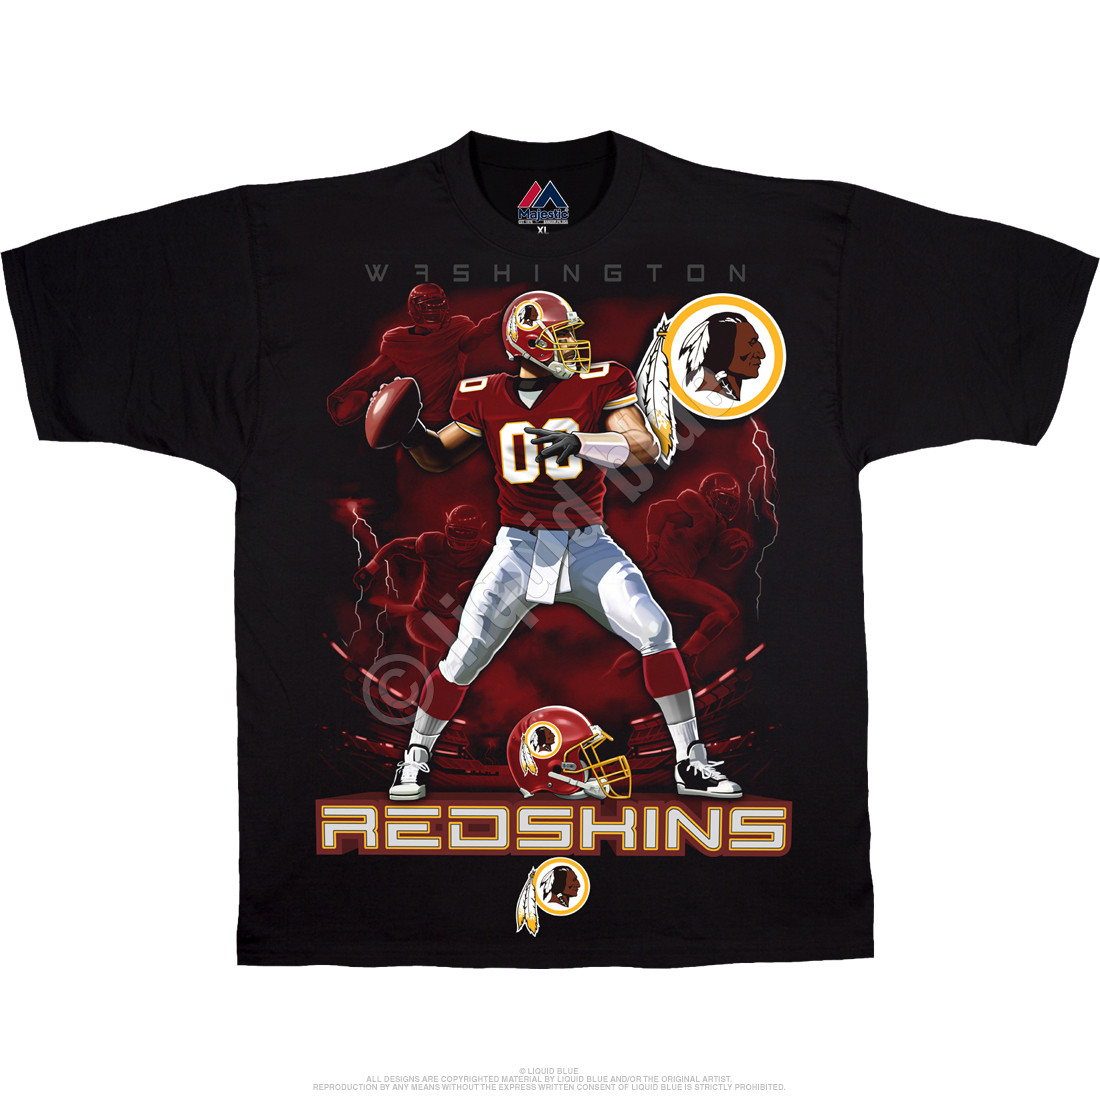 Washington Redskins Quarterback Black T-Shirt